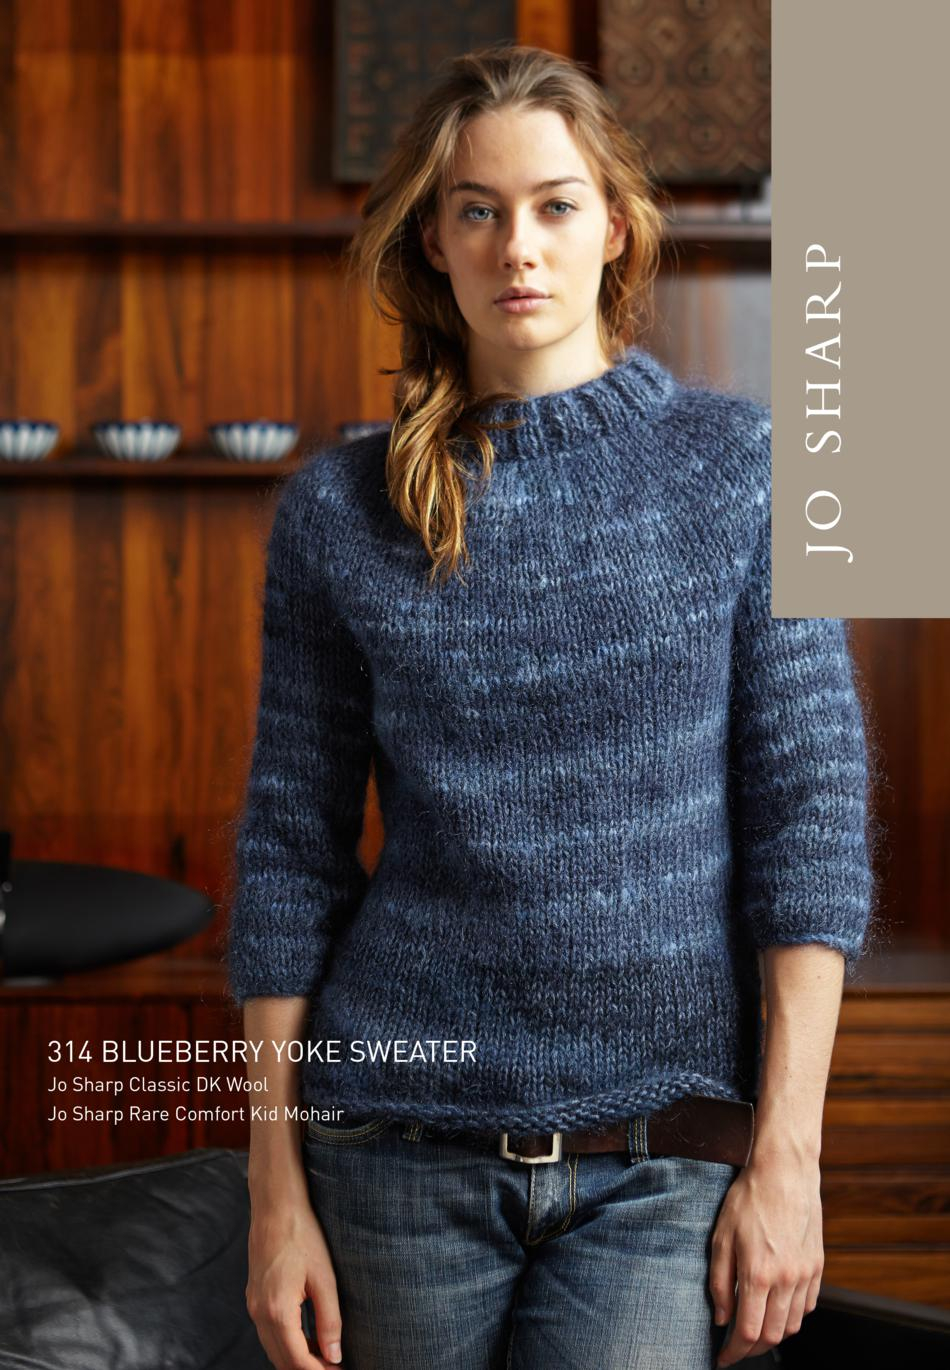 Yoke Knitting Pattern Jo Sharp Blueberry Yoke Sweater Pattern Knitting Pattern